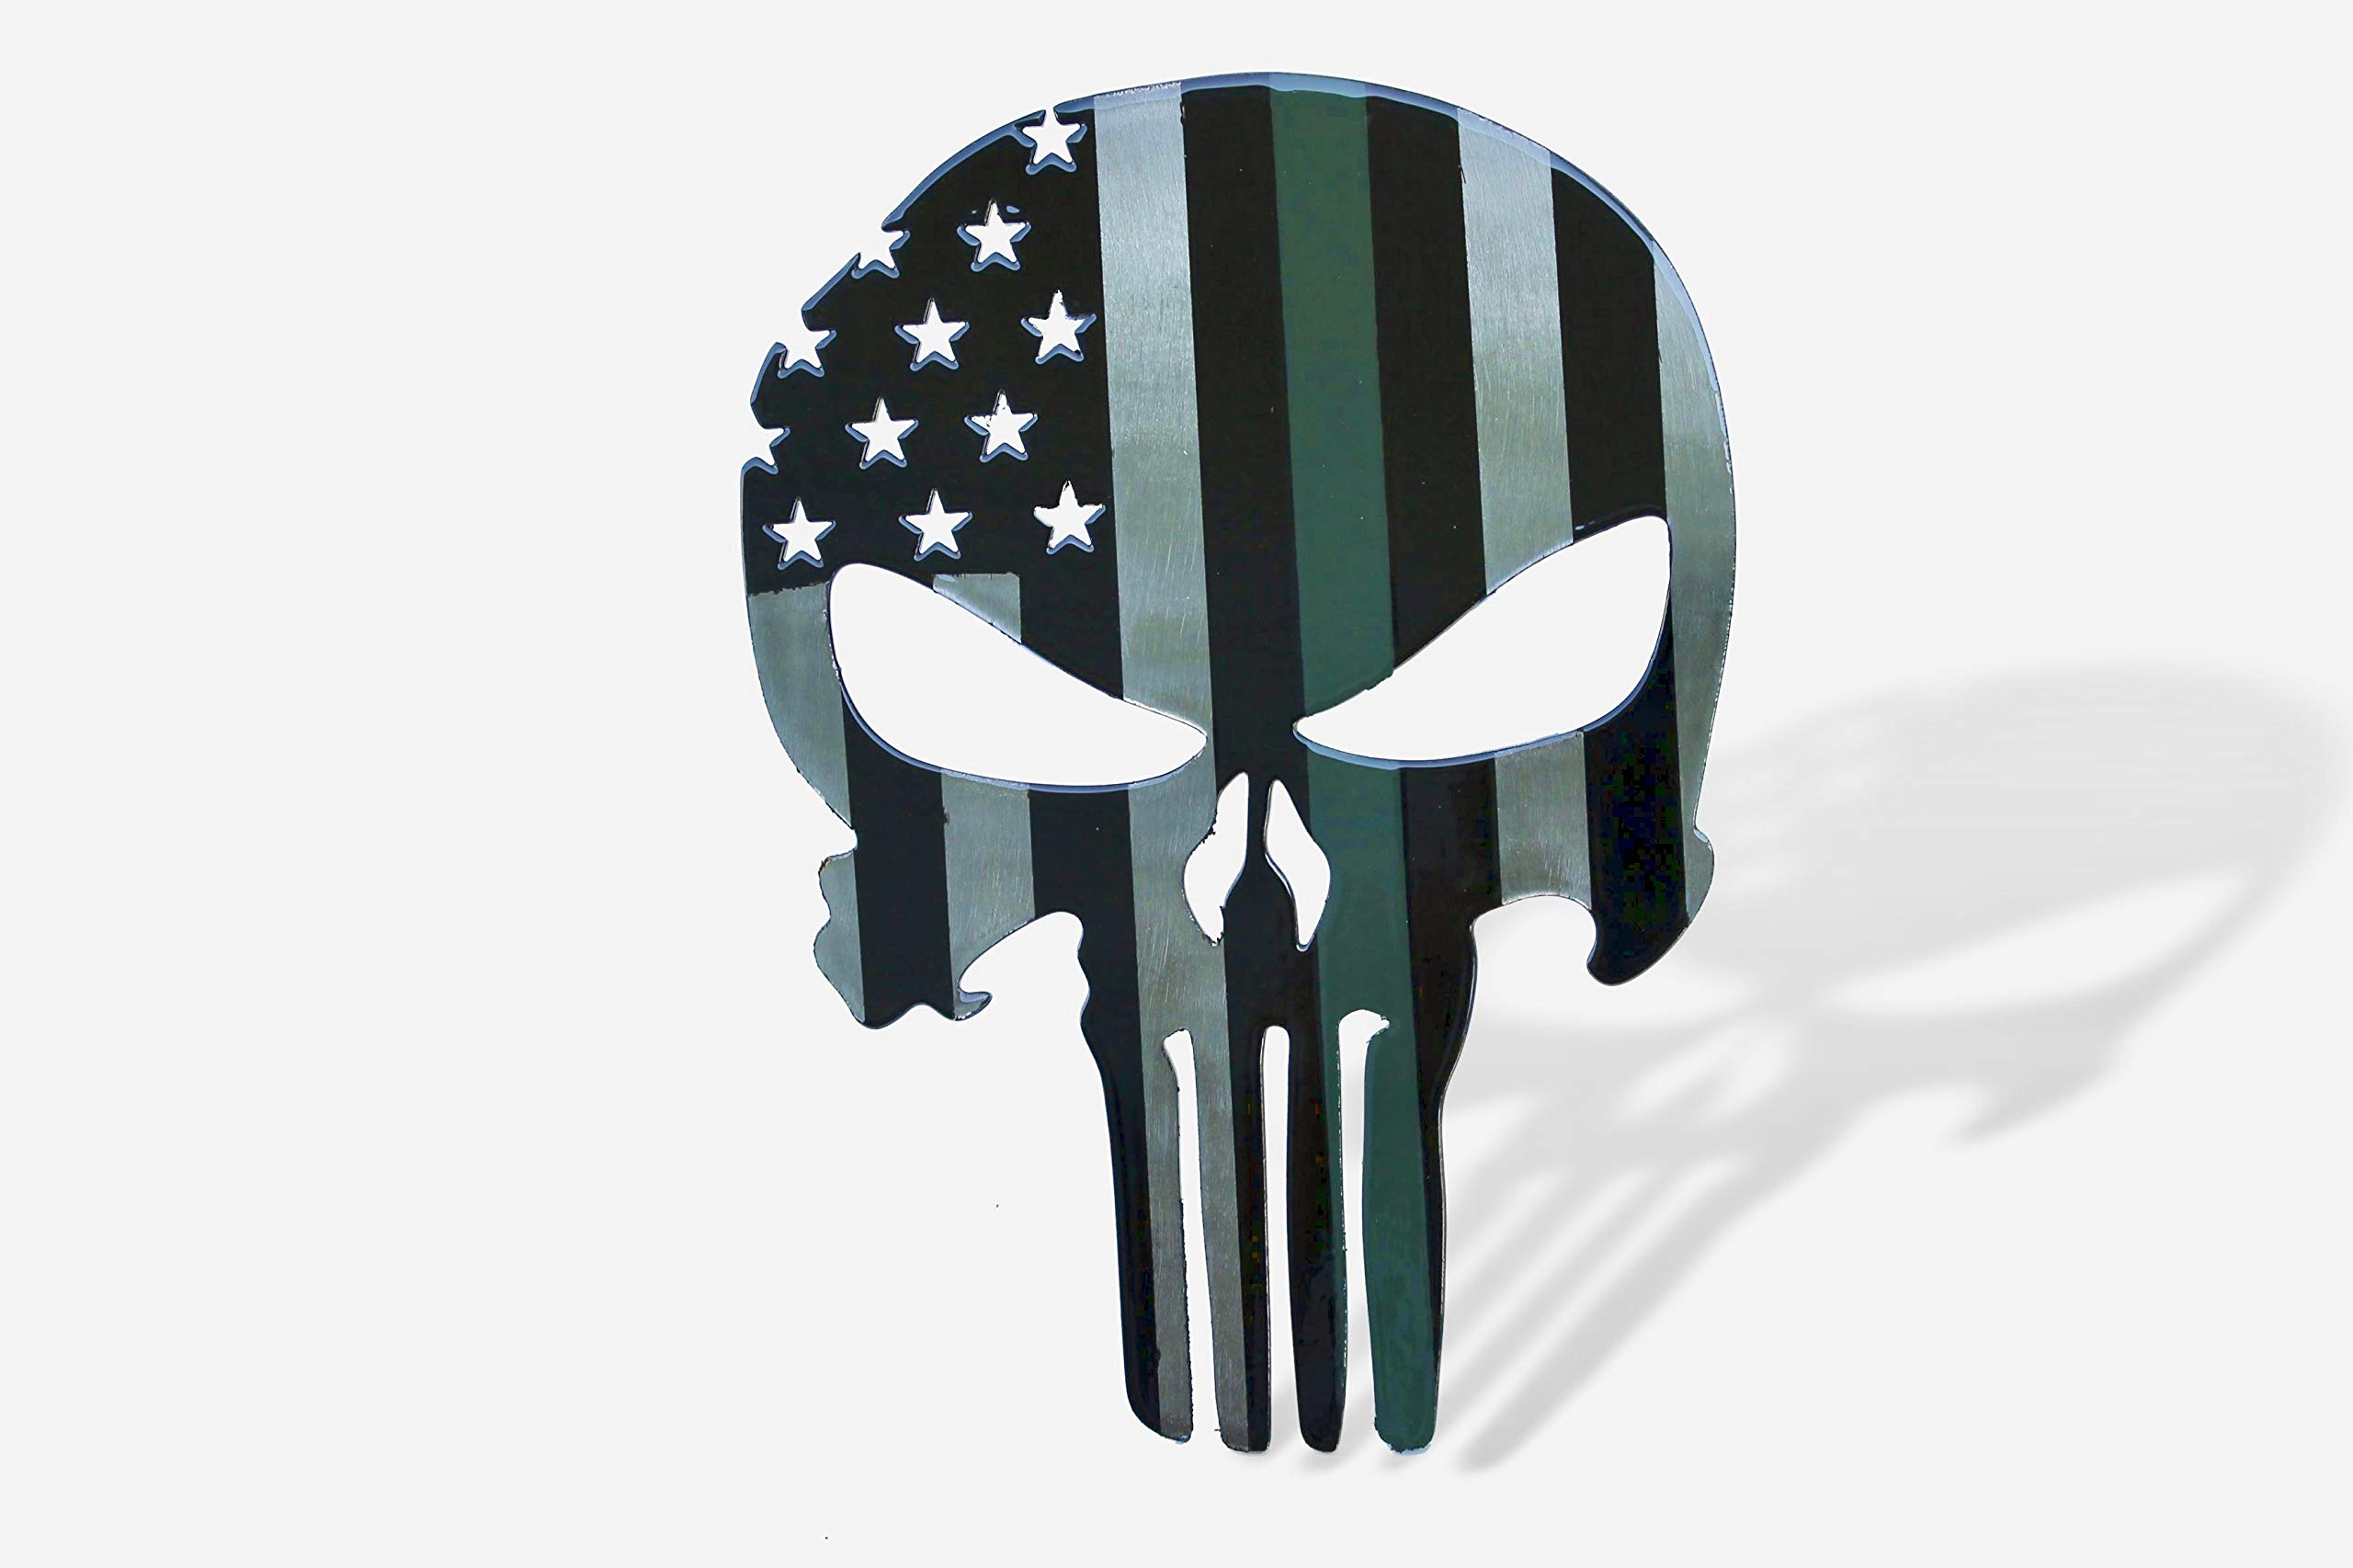 Fox MetalFab Powder Coated Trailer Hitch Cover Punisher (Army Green) by Fox MetalFab